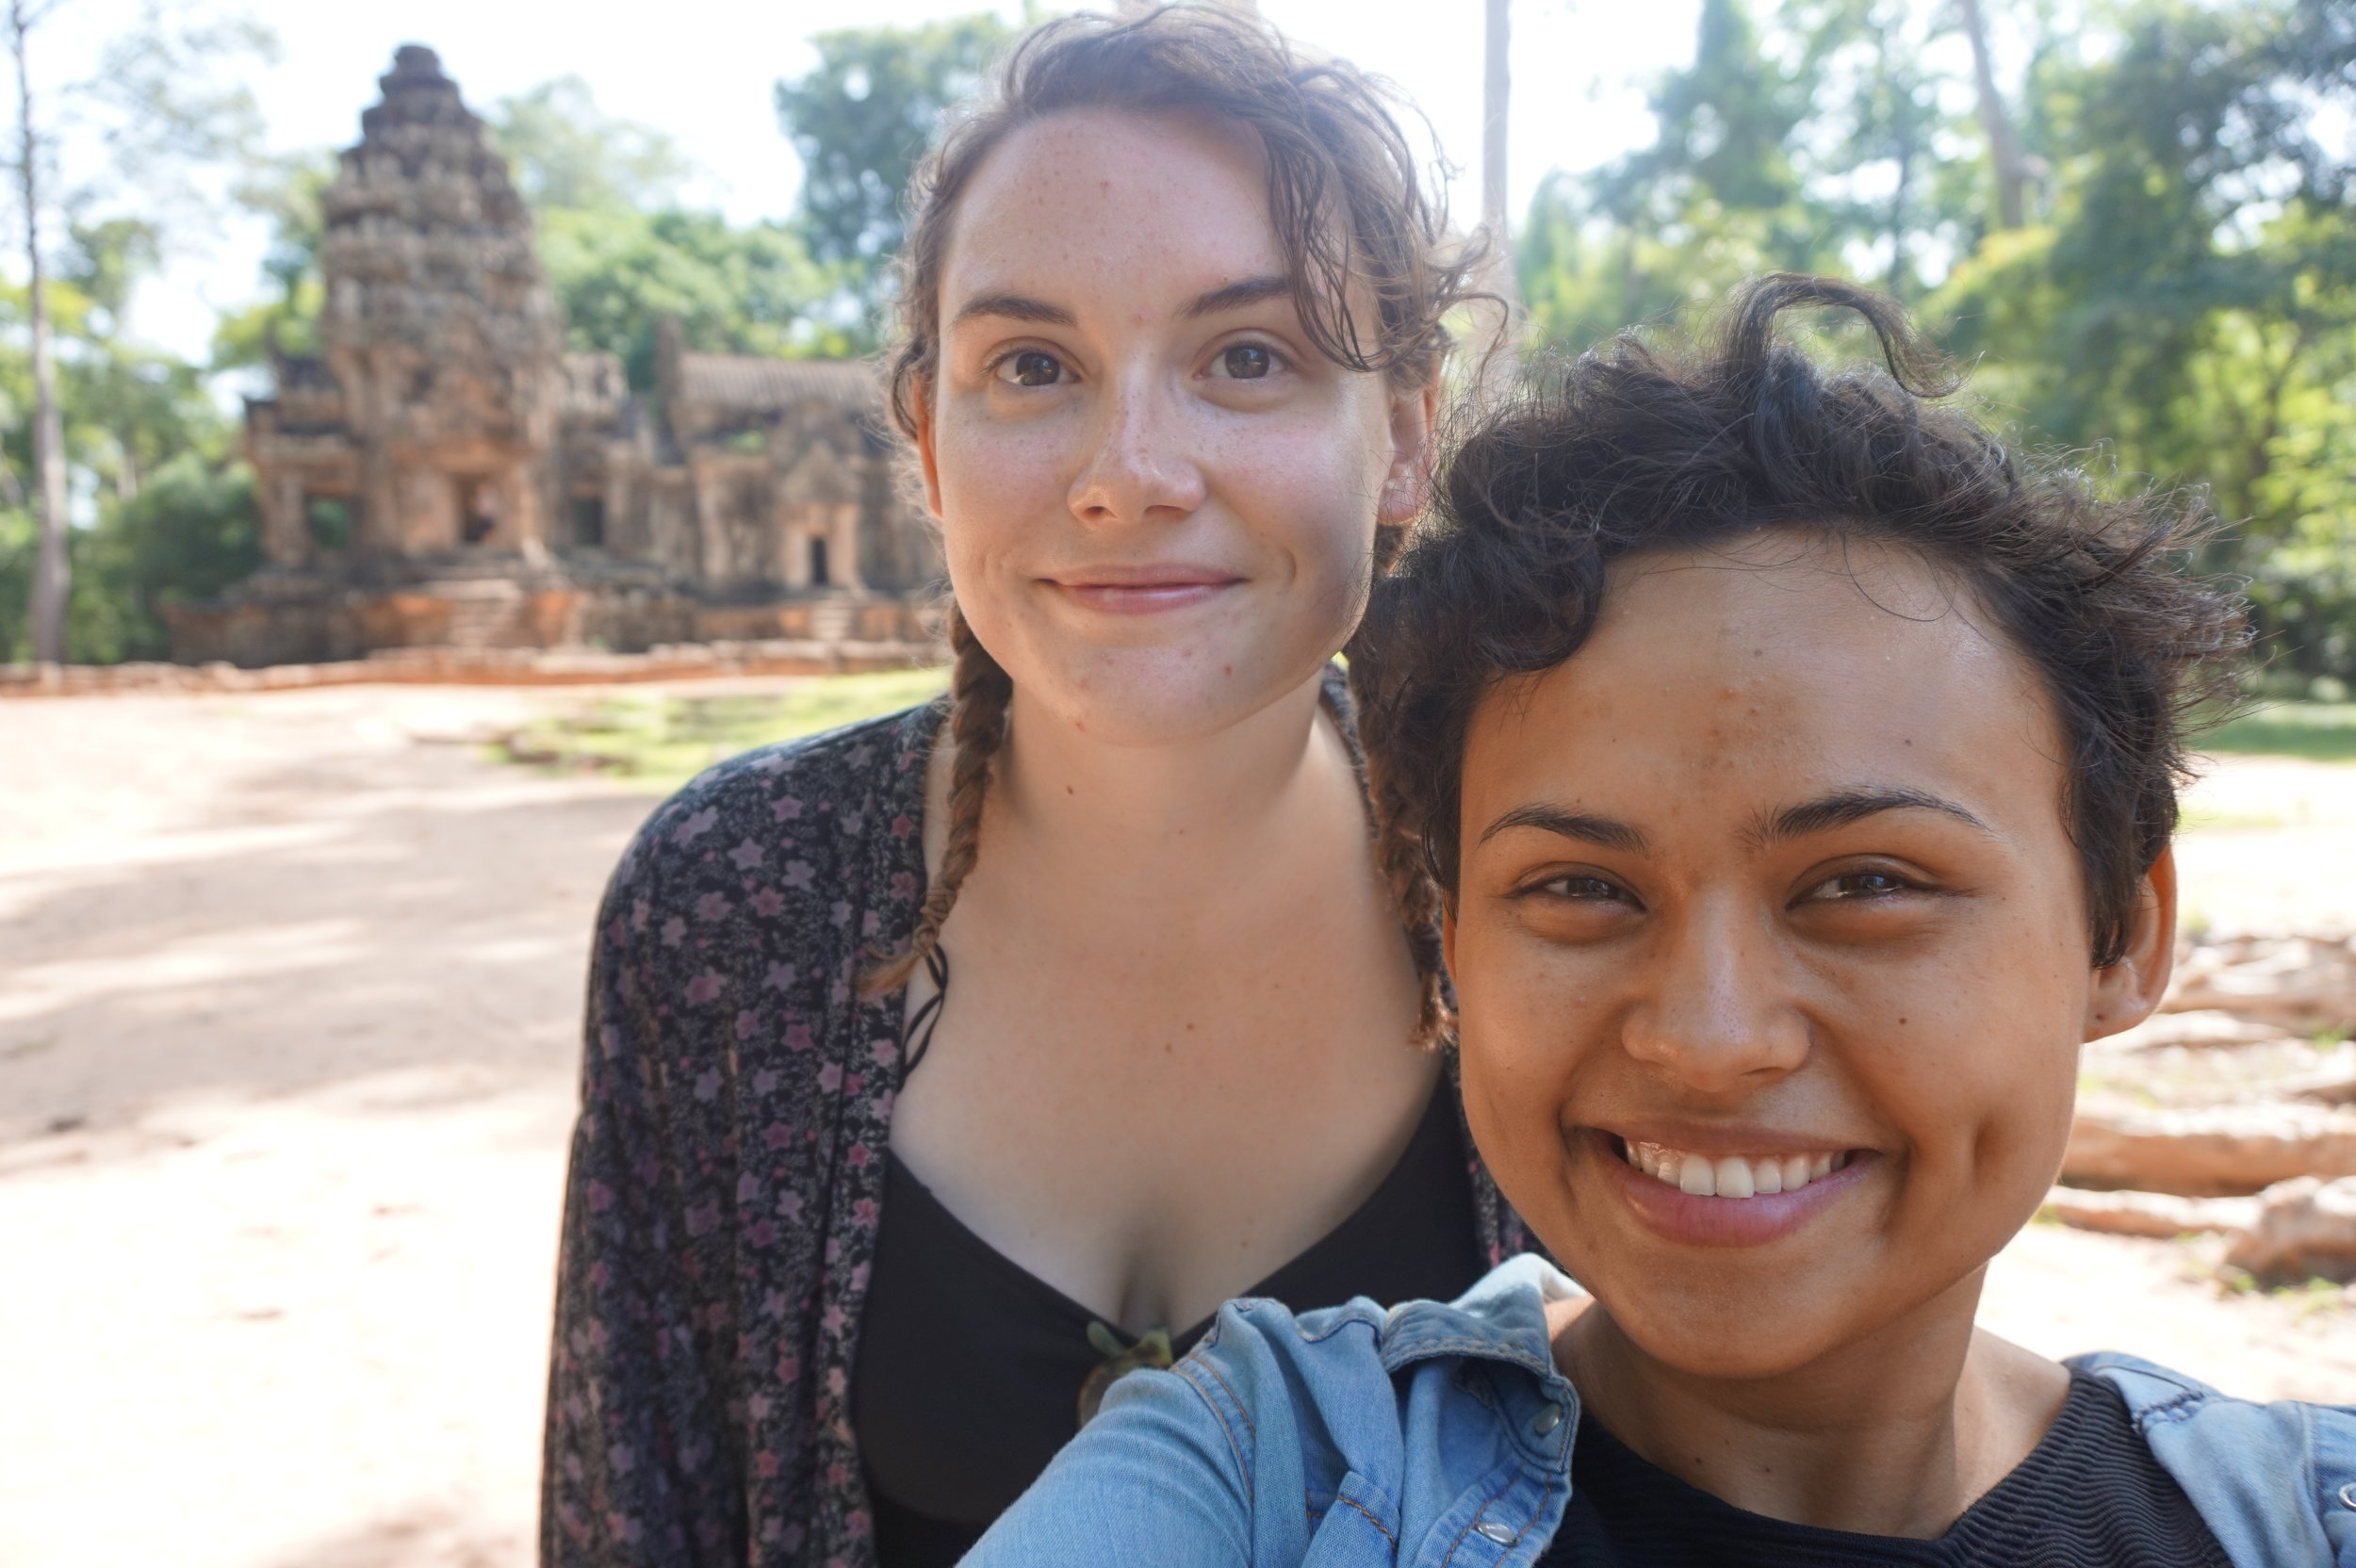 I didn't do enough research for Angkor Wat, Cambodia so we ended up going for the uneconomical option of paying $75 for a one day ticket (rather than taking our time, reducing our costs and visiting over a few days). We had a great time nonetheless, but definitely could have reduced our costs and been less exhausted!